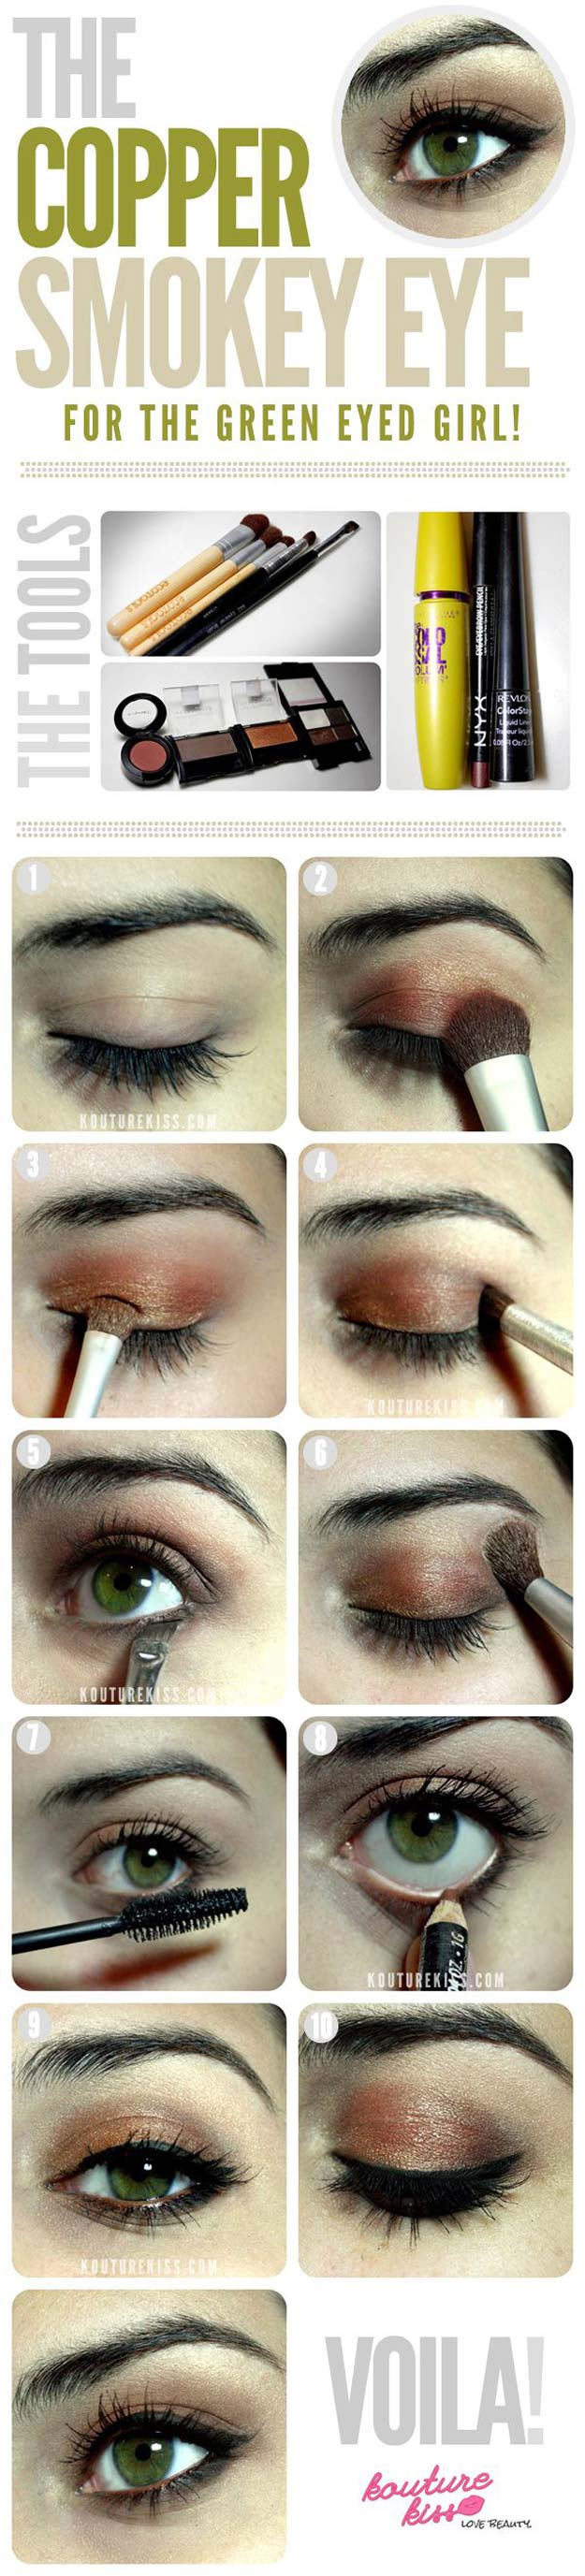 10 Lovable Prom Makeup Ideas For Hazel Eyes 38 makeup ideas for prom the goddess 1